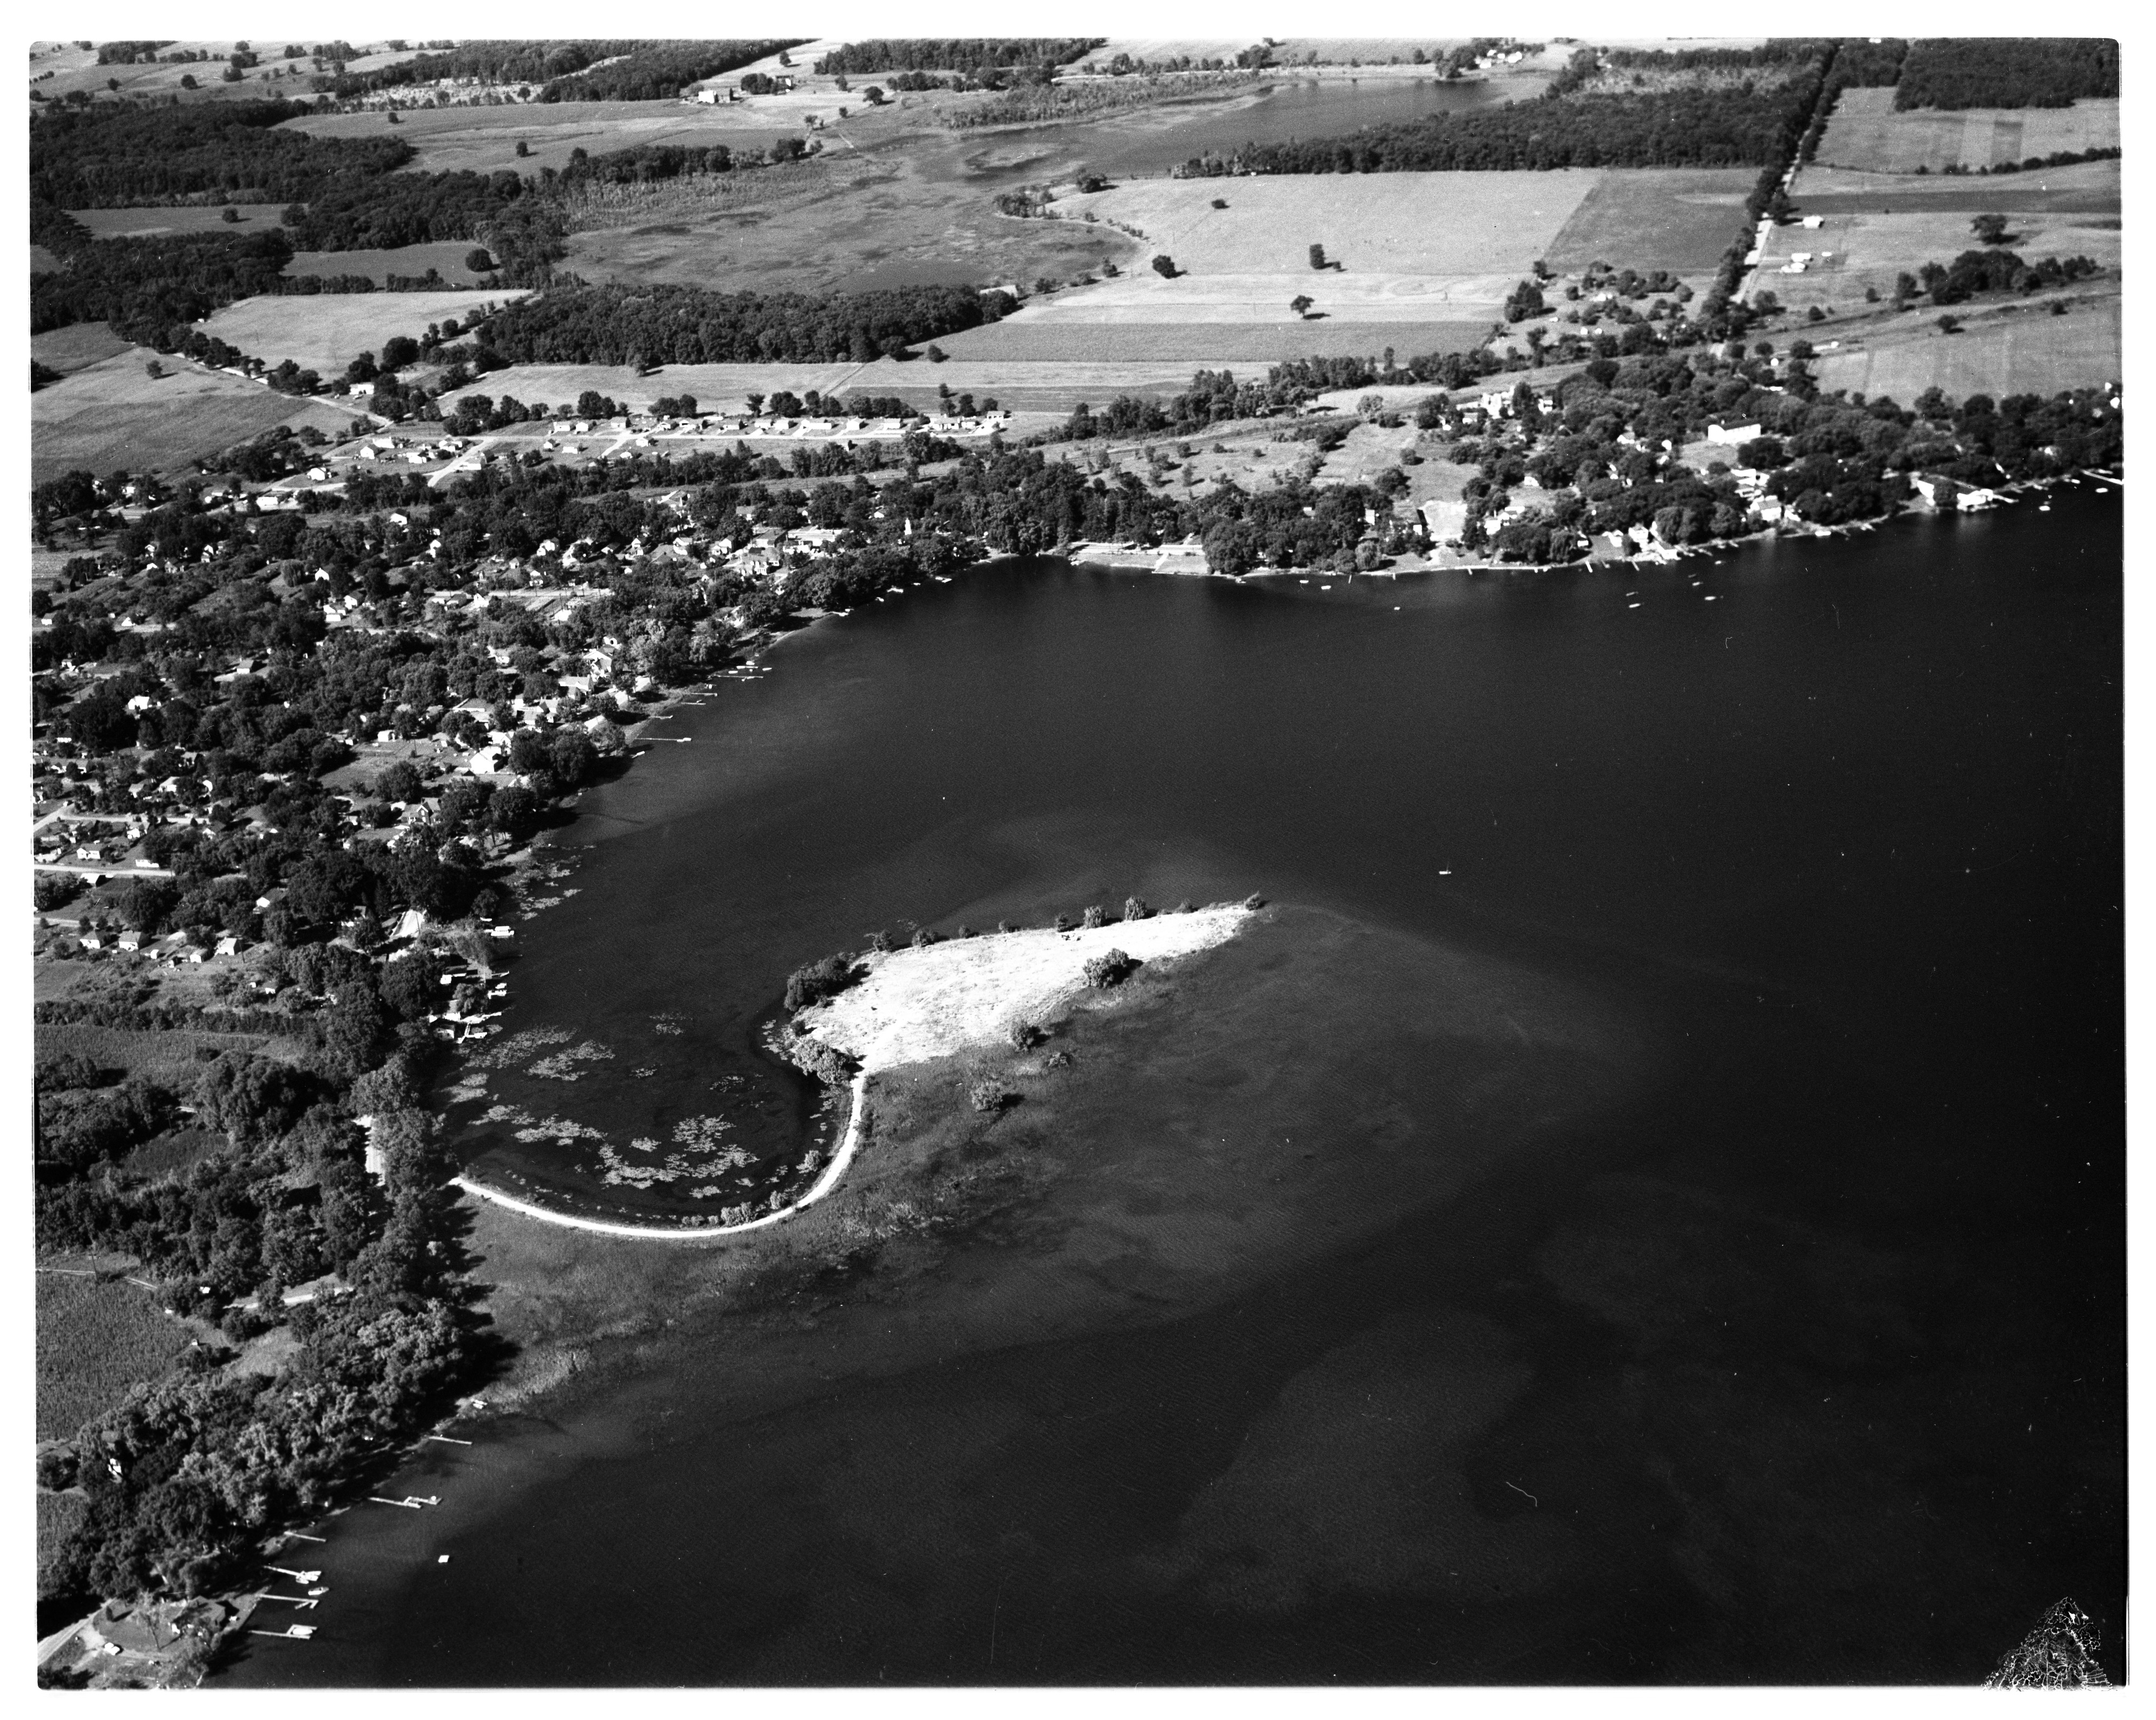 Aerial Photograph of Whitmore Lake, Northfield Township, August 1956 image